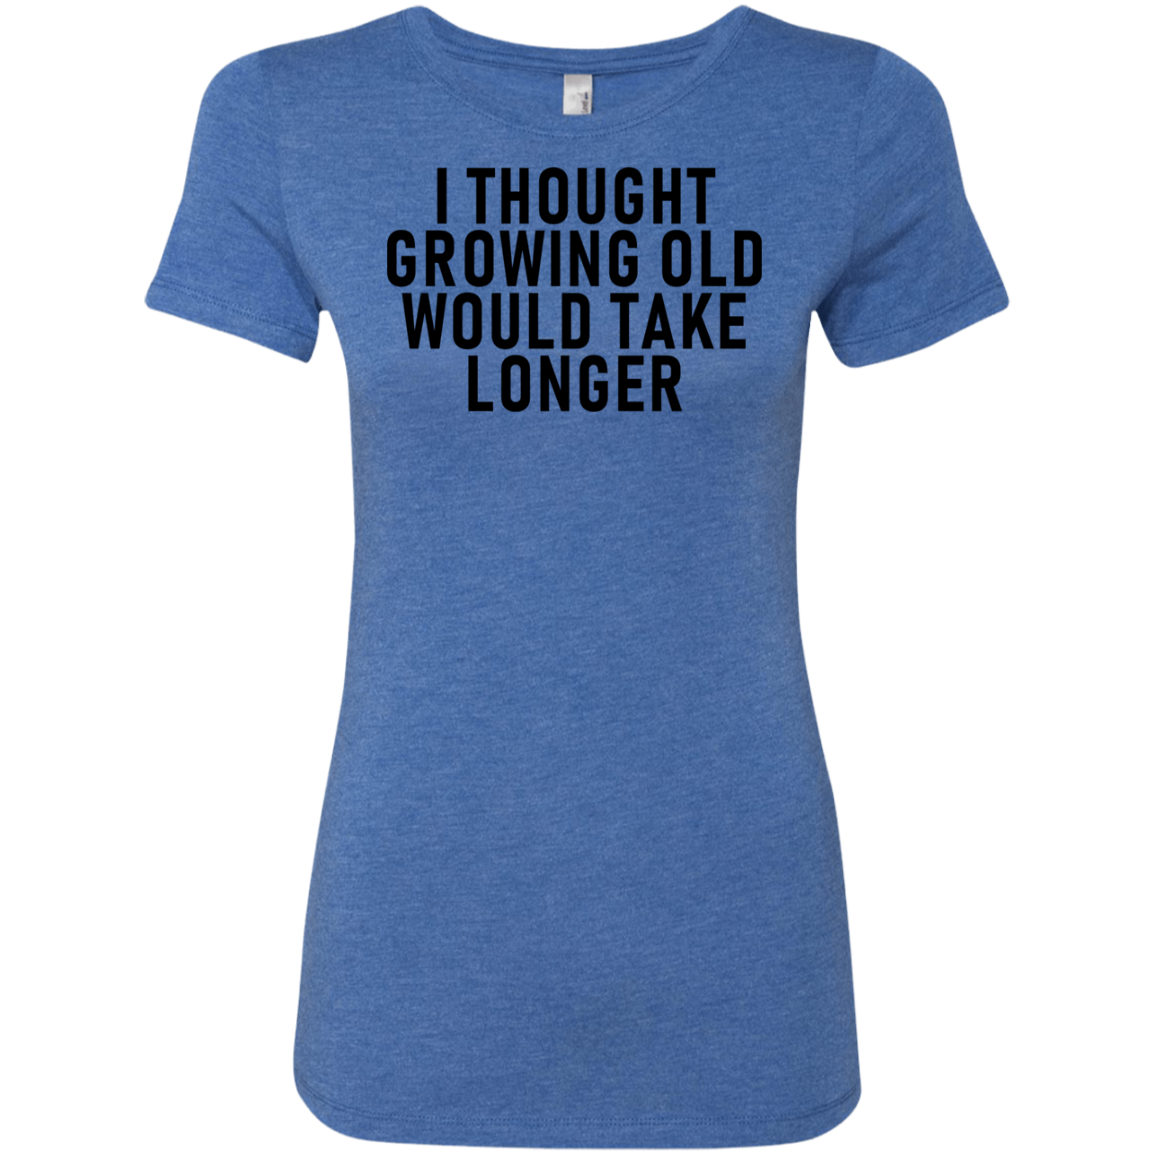 I THought Growing Old Would Take Longer Women's Classic Tee